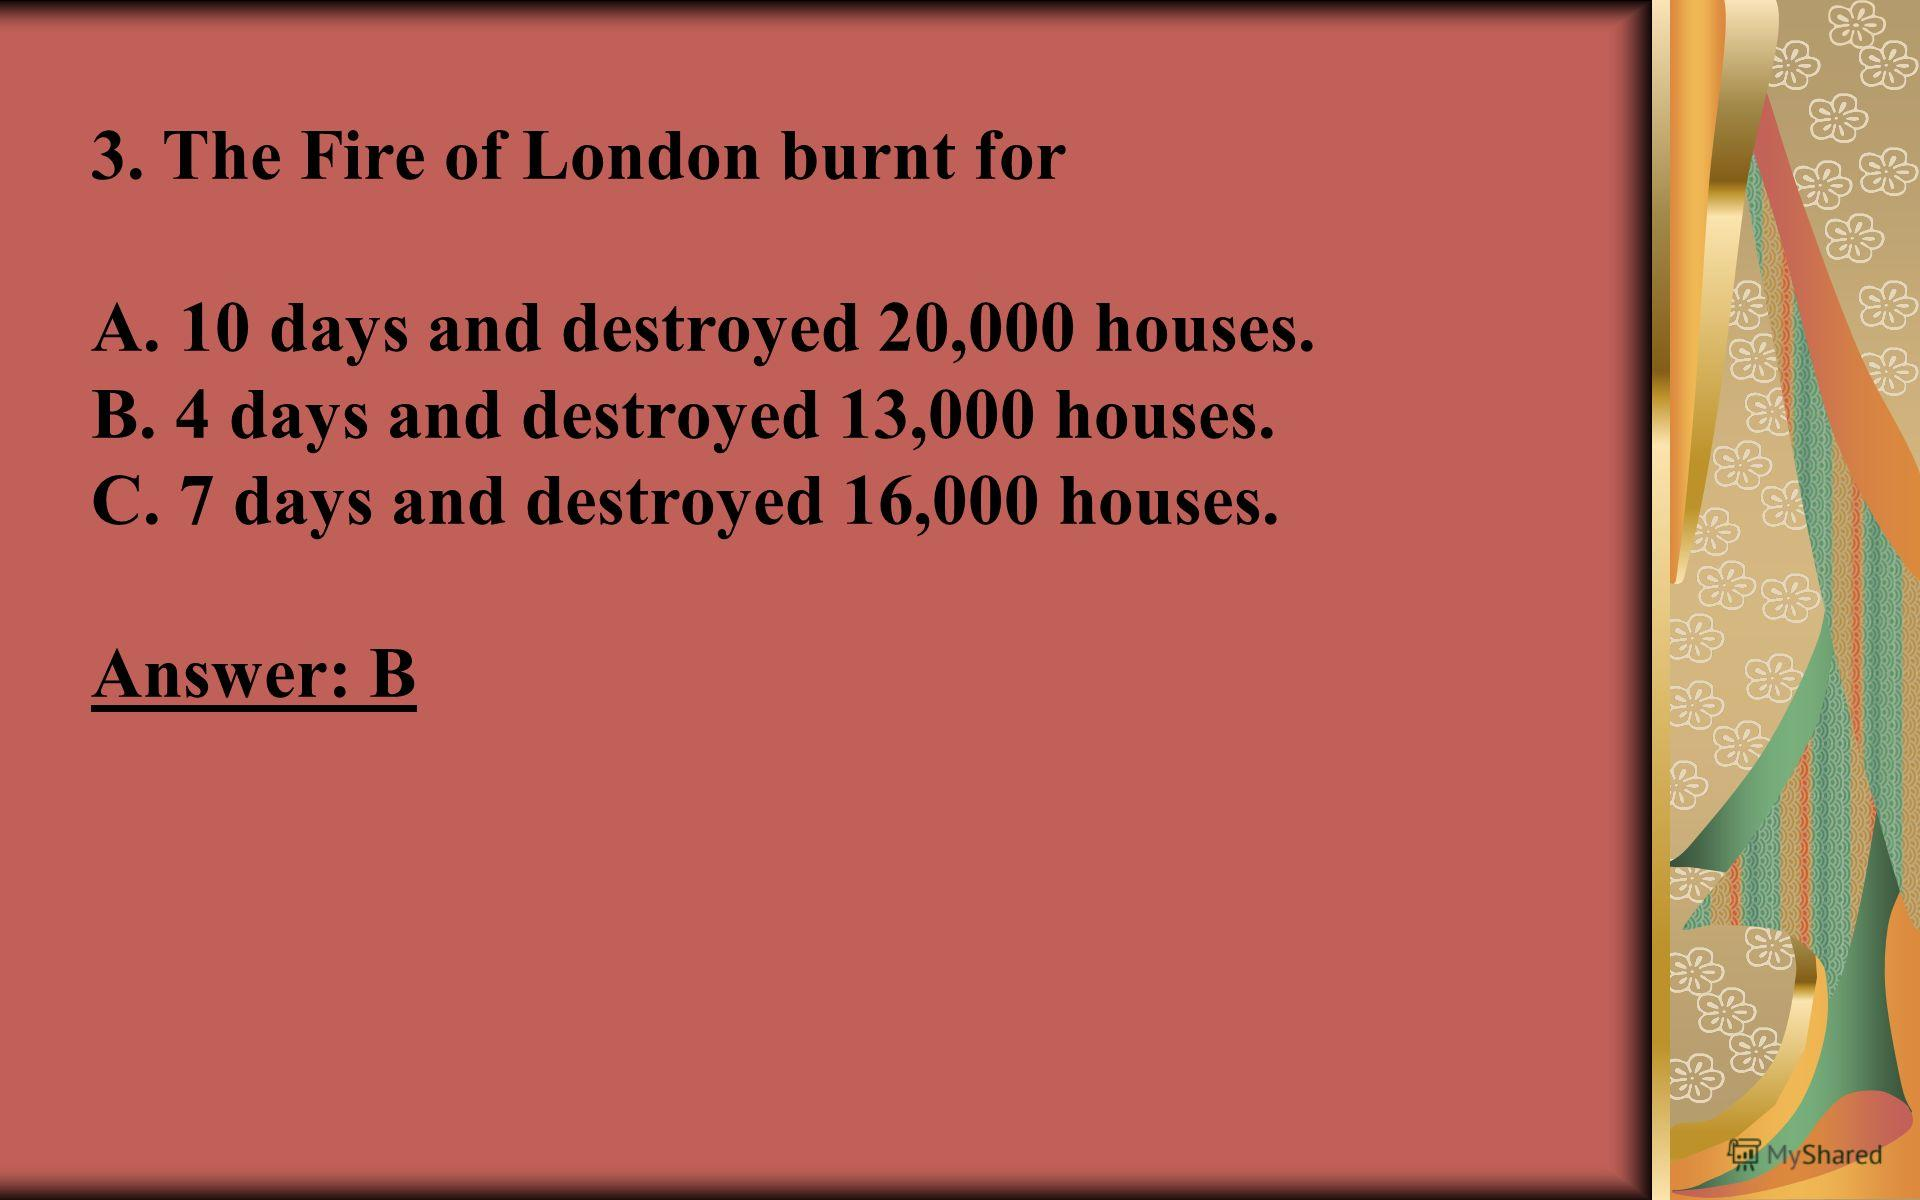 3. The Fire of London burnt for A. 10 days and destroyed 20,000 houses. B. 4 days and destroyed 13,000 houses. C. 7 days and destroyed 16,000 houses. Answer: B